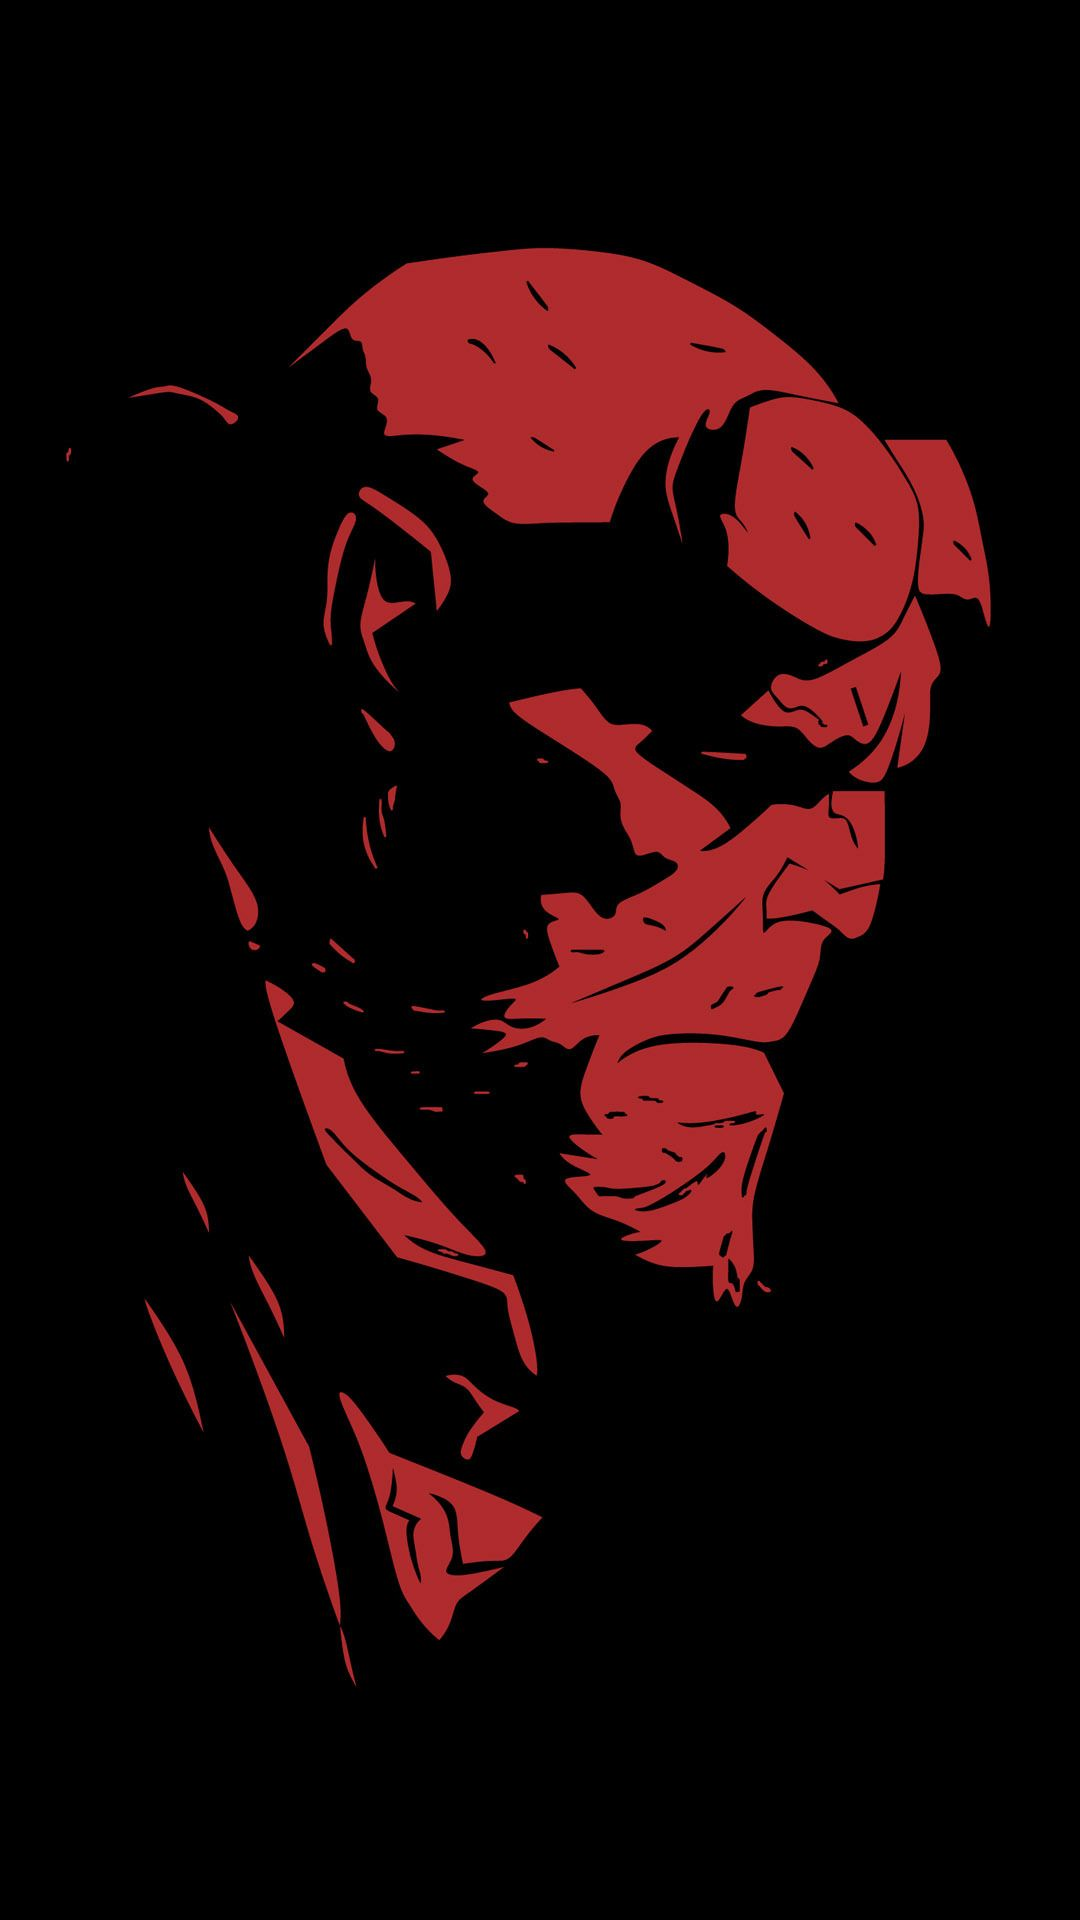 My Collection Of Wallpapers For Phone And Desktop 600 Album On Imgur Hellboy Wallpaper Mike Mignola Art Hellboy Art